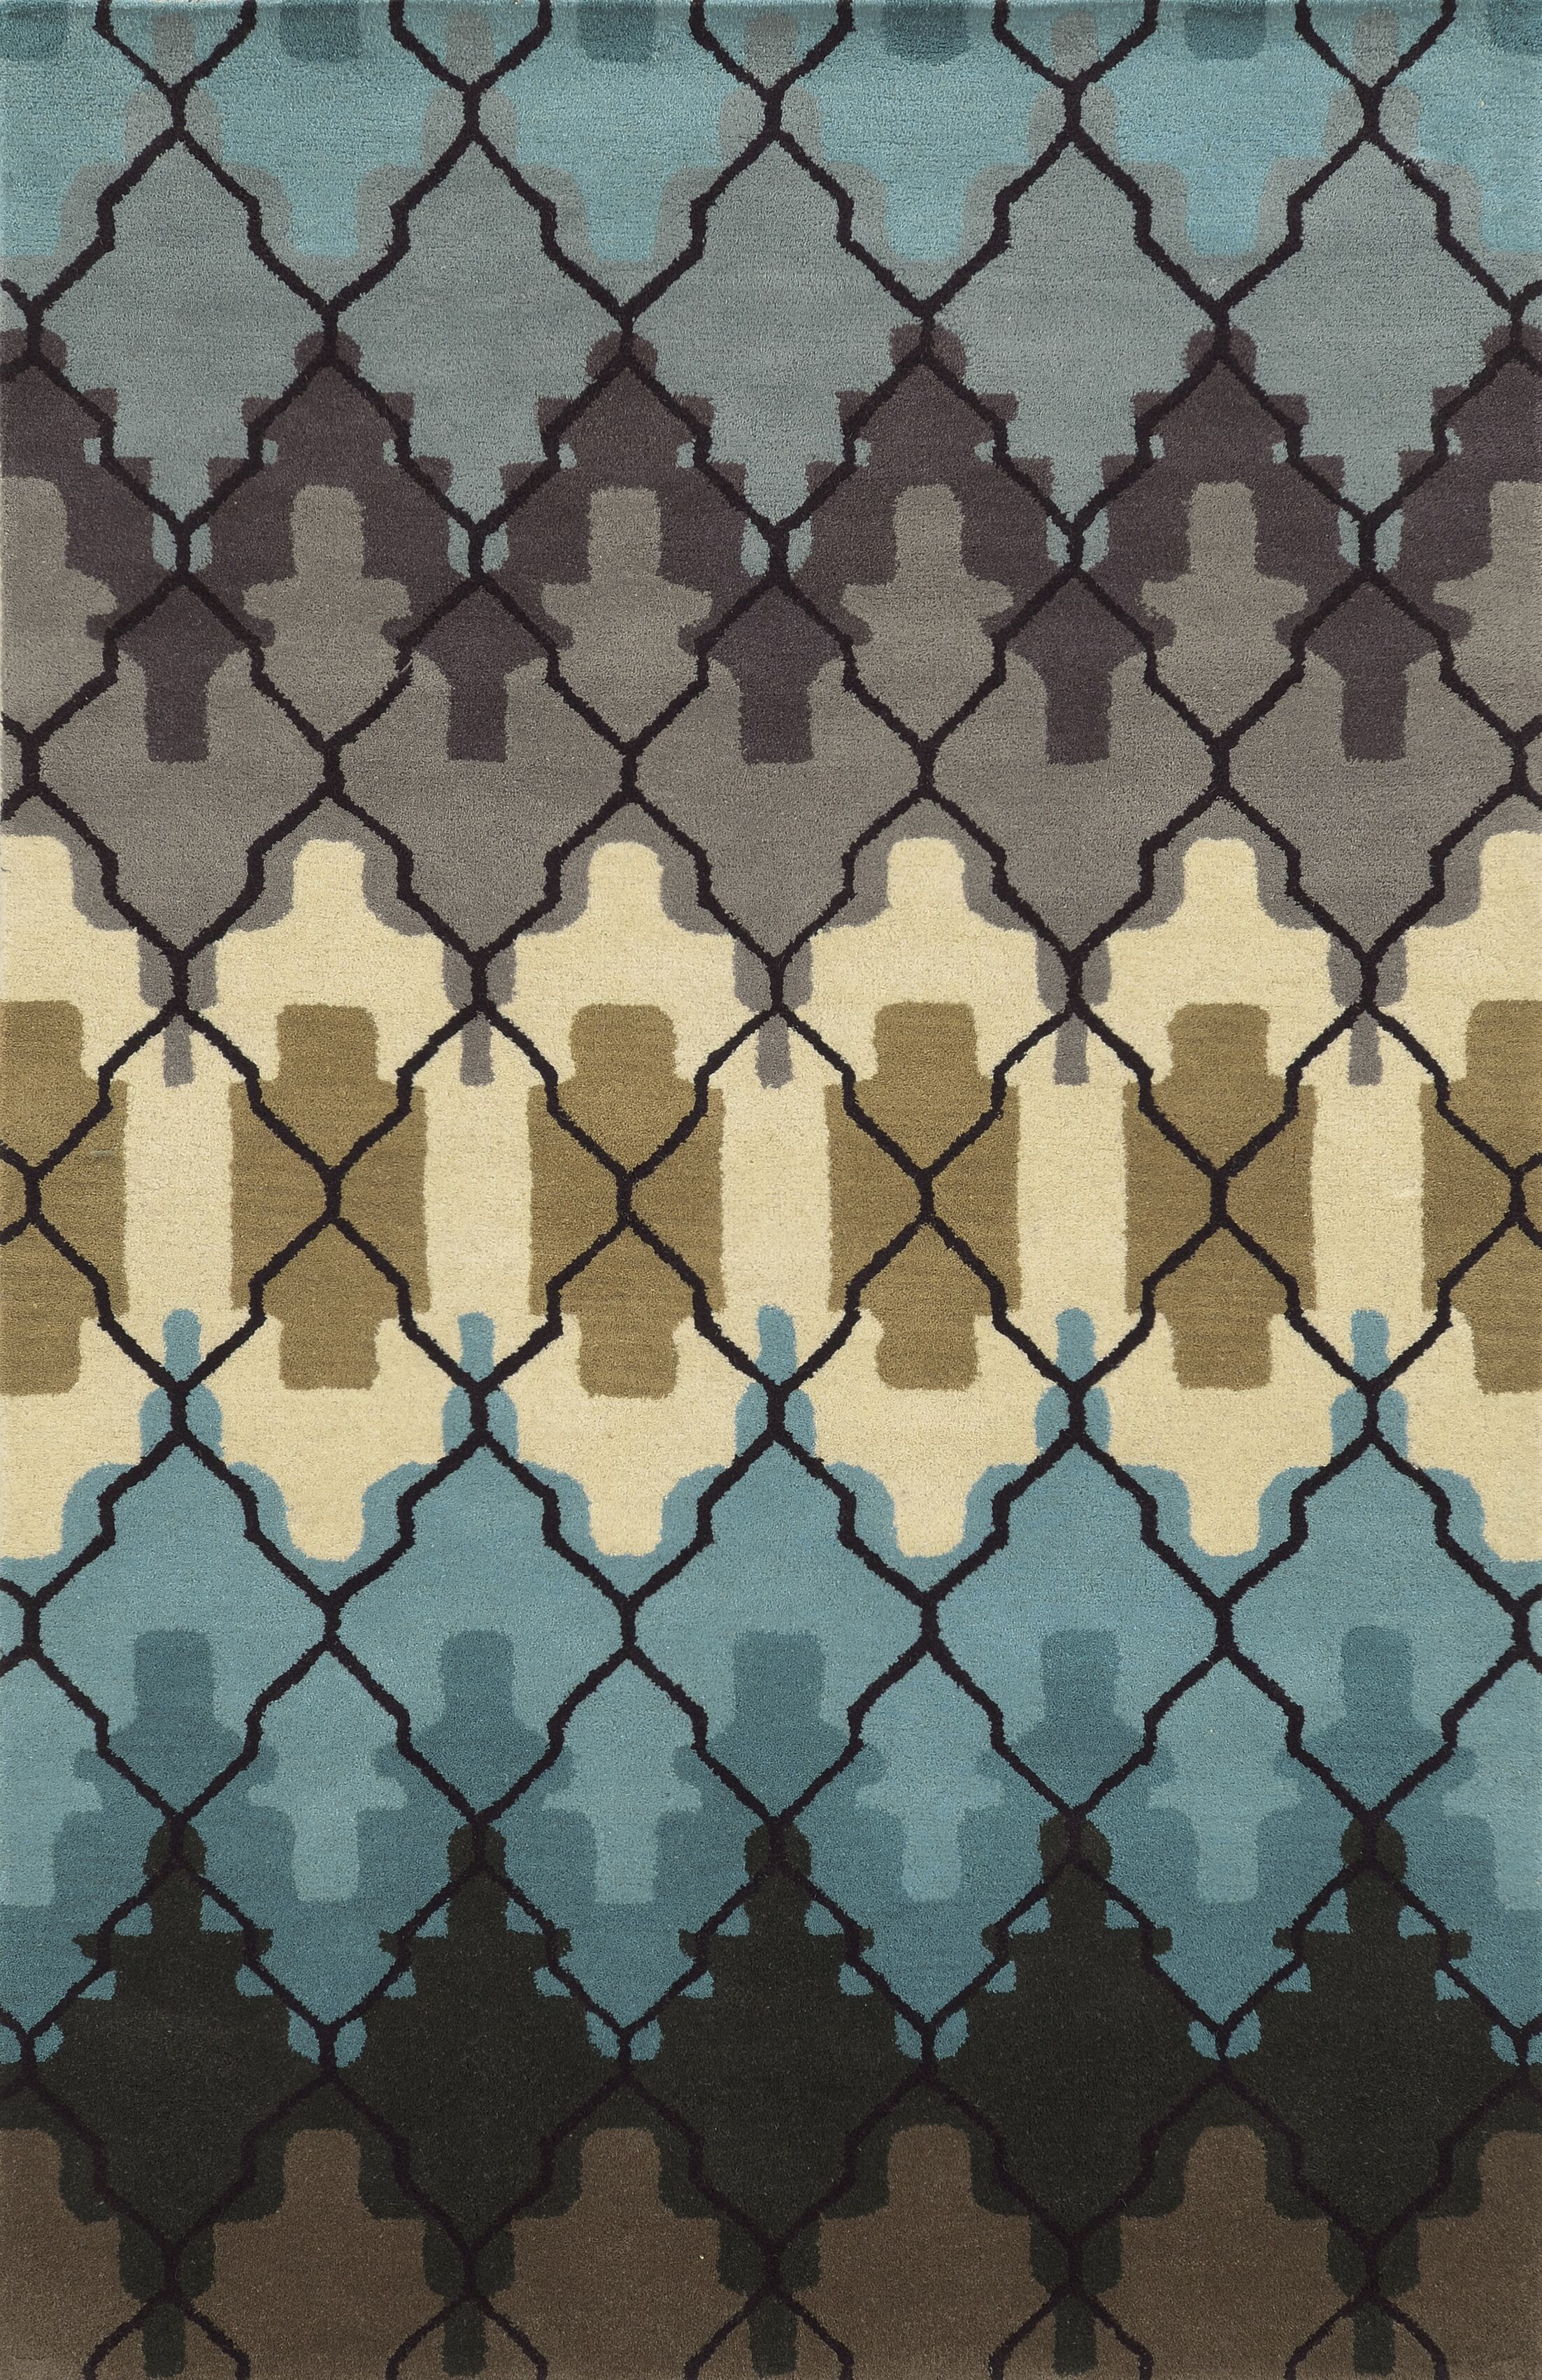 Peter Hand-Tufted Area Rug Rug Size: Rectangle 5' x 8'